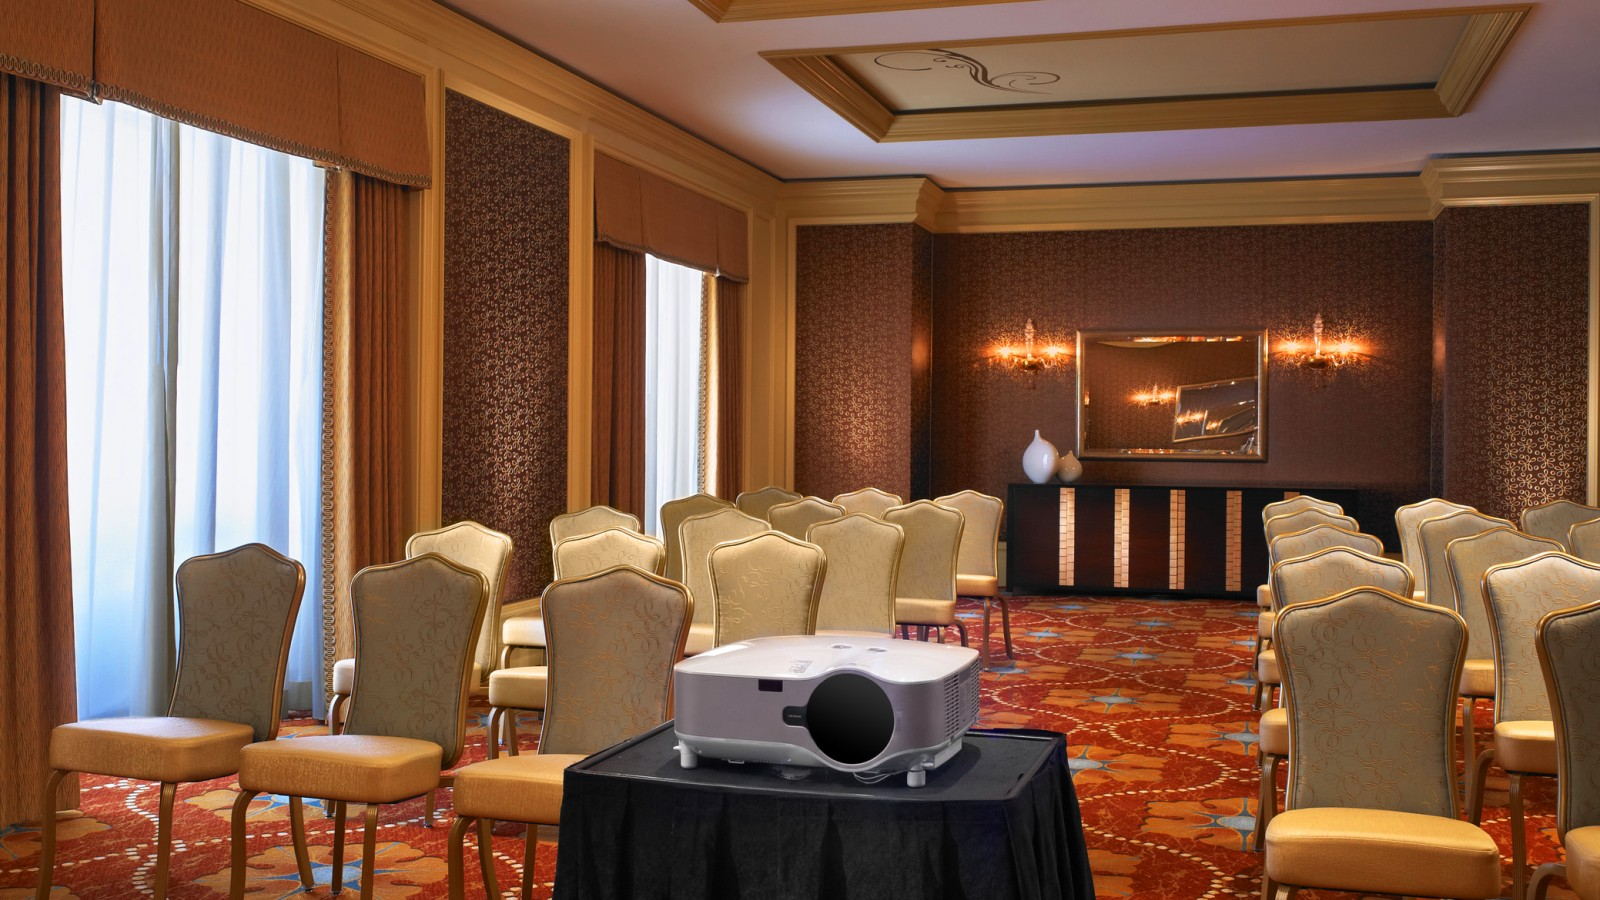 houston meeting rooms Our houston meeting venues can be configured for any kind of event download specification charts and floor plans now to see what best fits your needs.